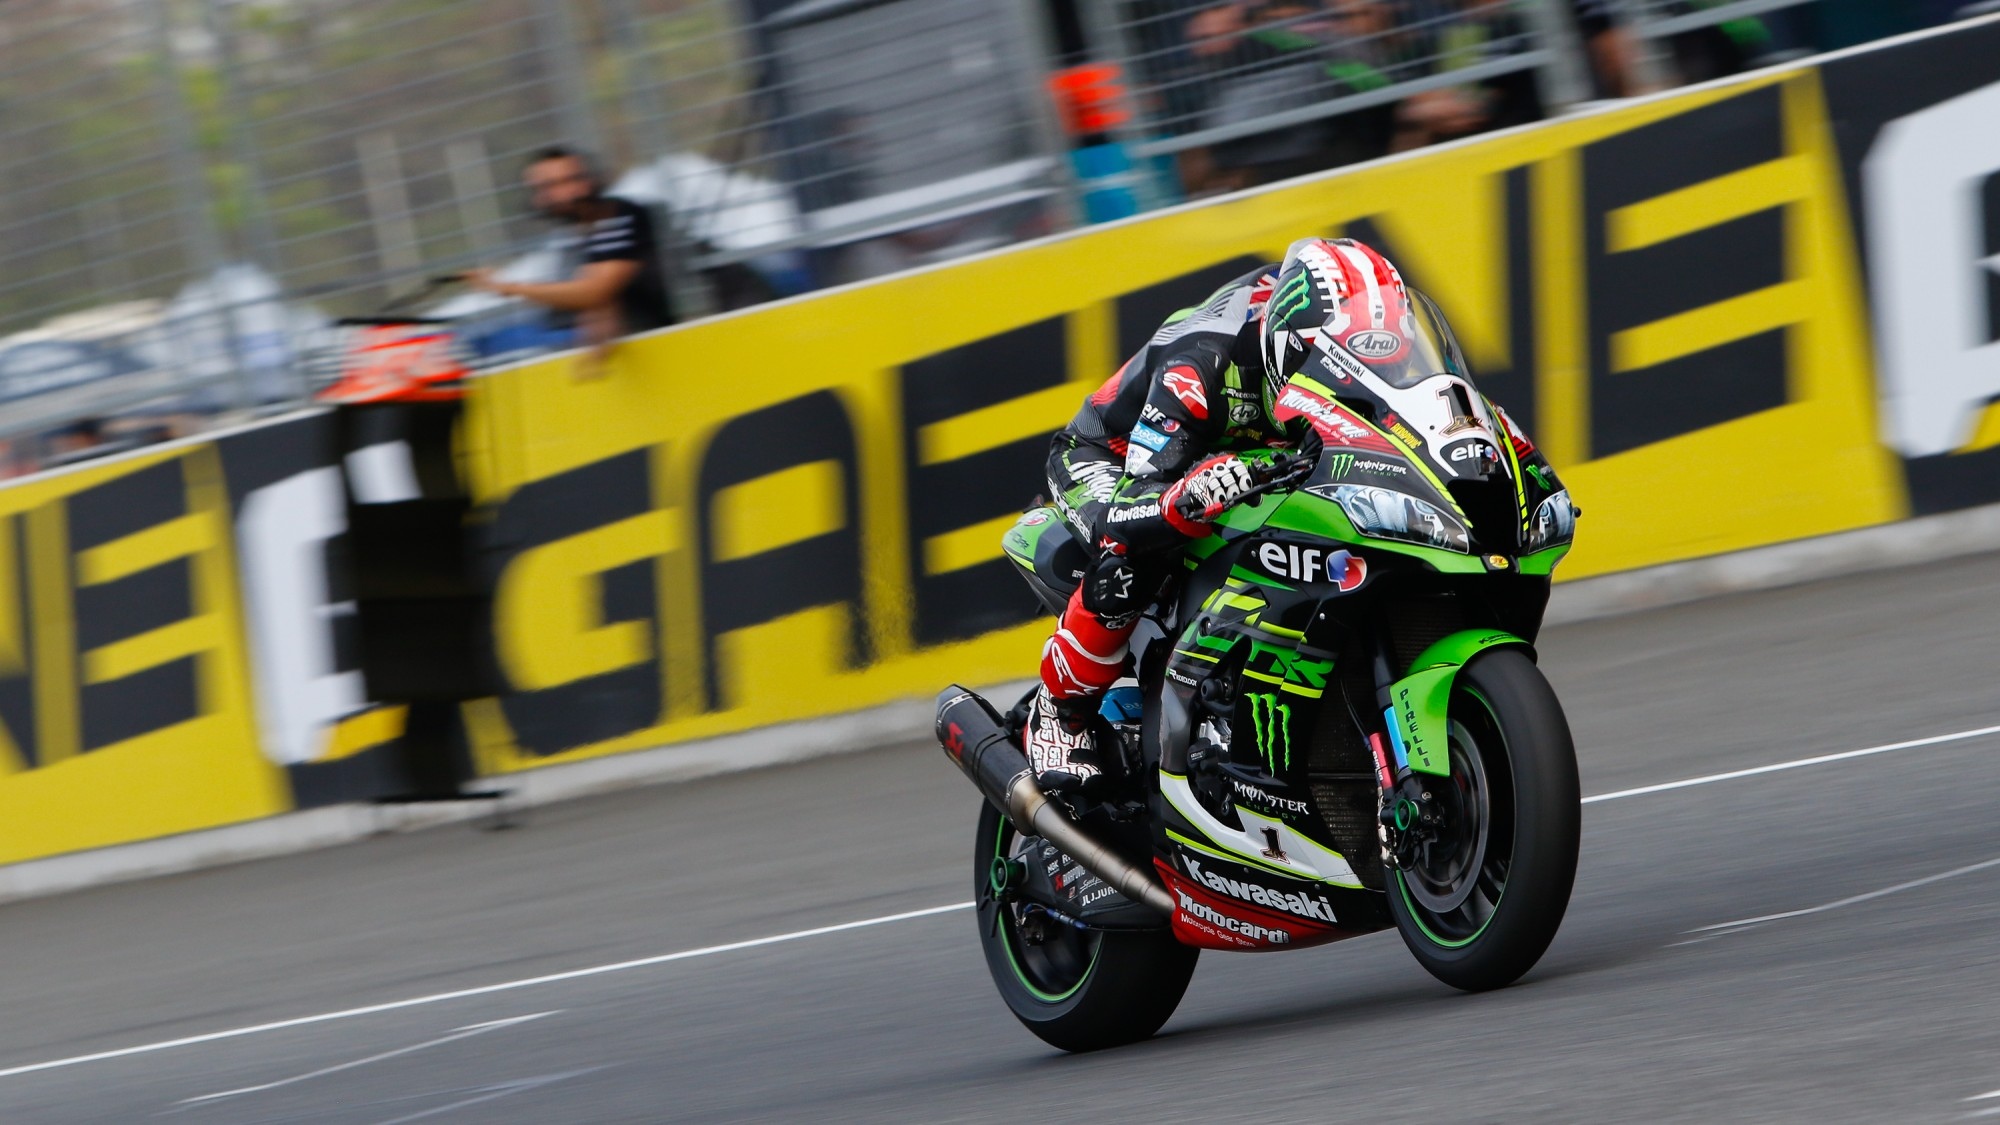 SBK Thailand – Kawasaki duo on top after FP3